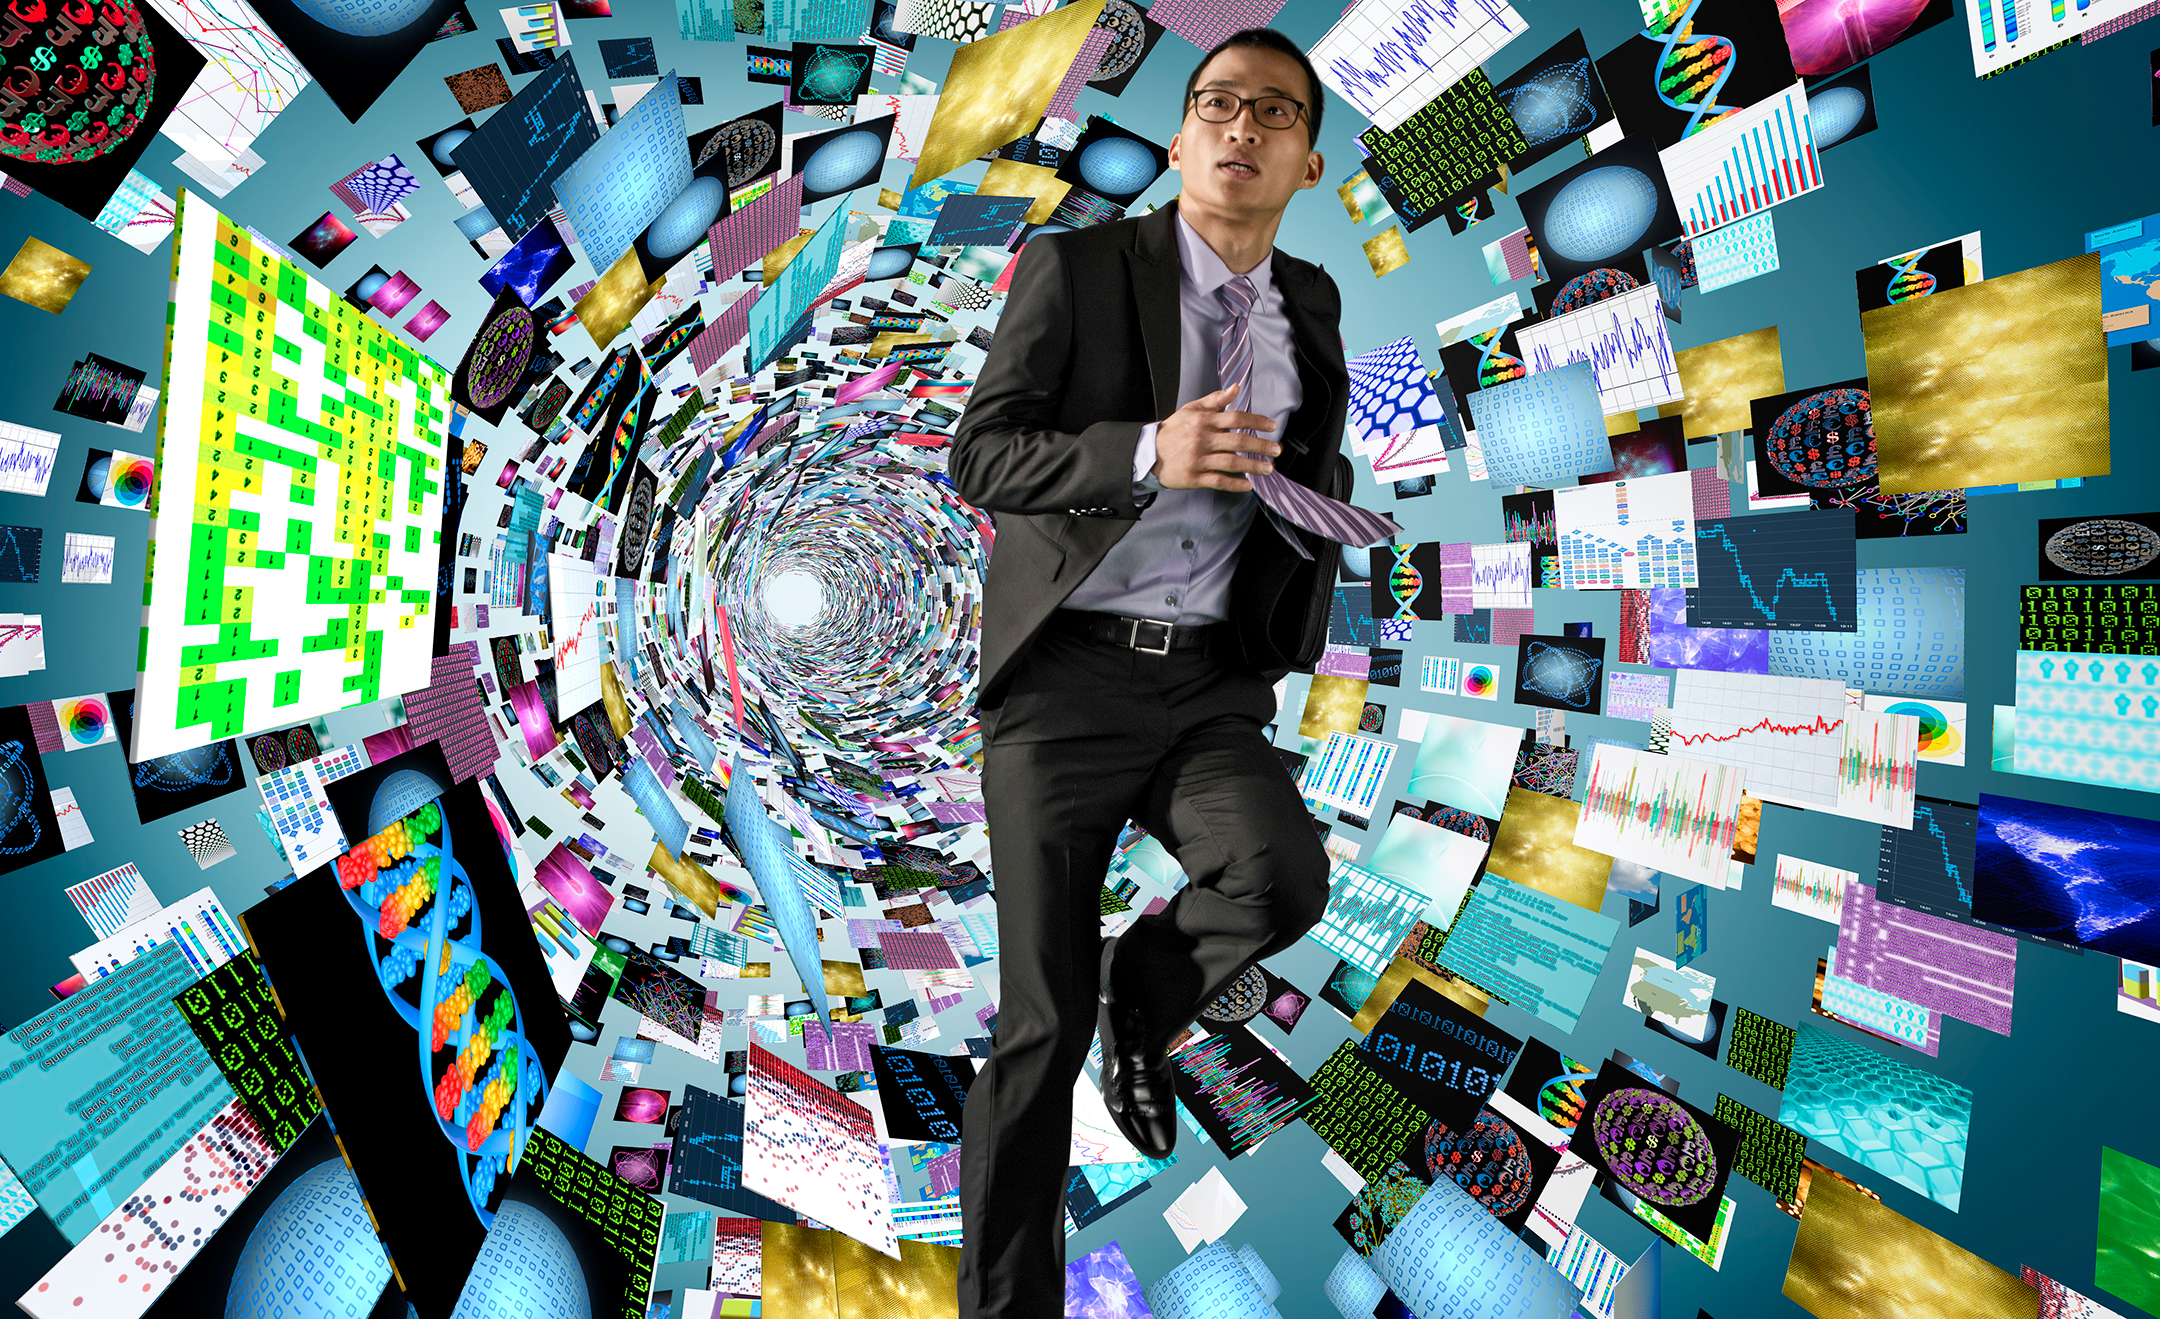 A man in suit runs through a tunnel of screens and information